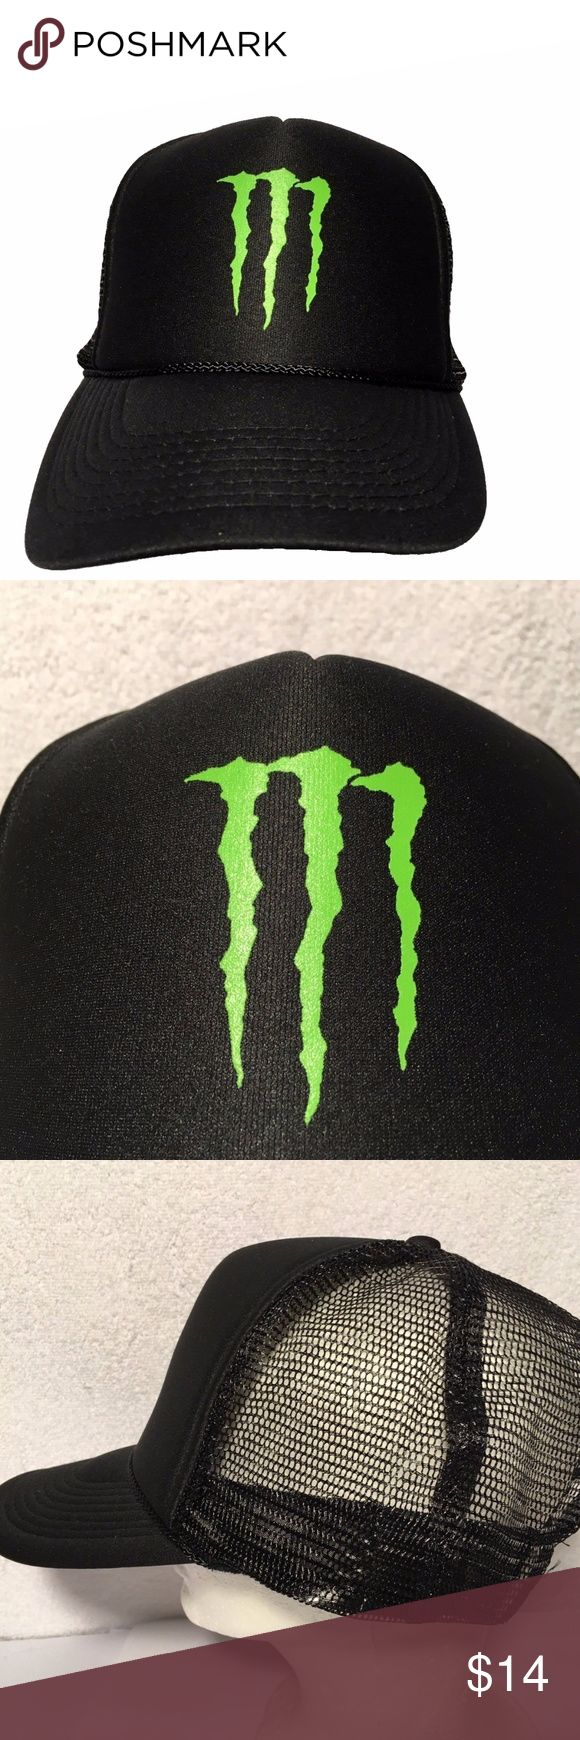 "Monster Energy Drink Black Snapback Trucker Hat New without tags Monster Energy hat.  Made by Otto Snapback trucker style with mesh back. Black color with green Monster ""M"" logo. Makes a great gift OTTO Accessories Hats"